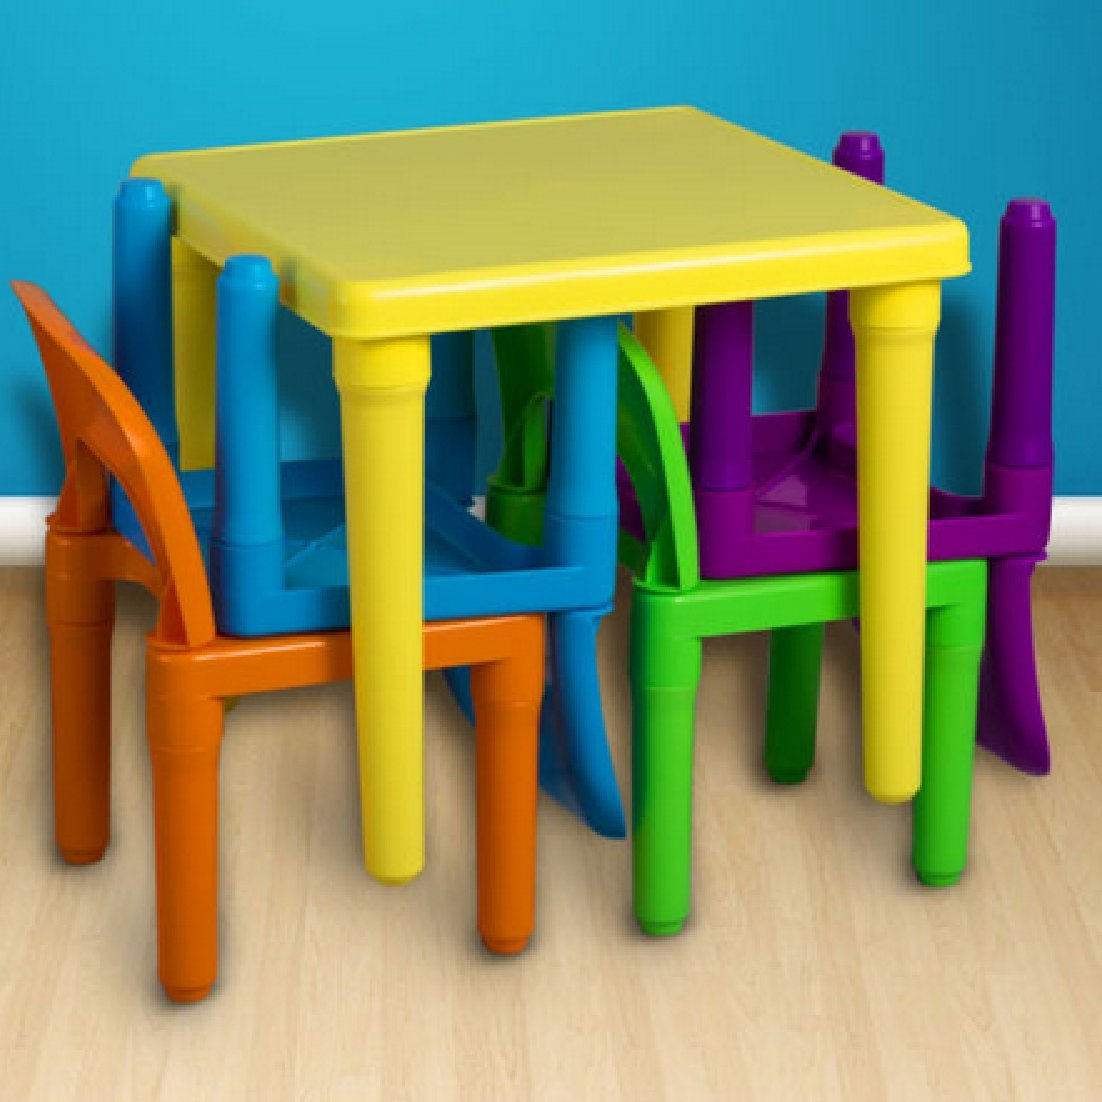 Amazing Amazon.com: Activity Table Kids Play Indoor Outdoor : Kids Table And Chairs  Play Set Toddler Child Toy Activity Furniture In Outdoor : Toddler Set Play  ...